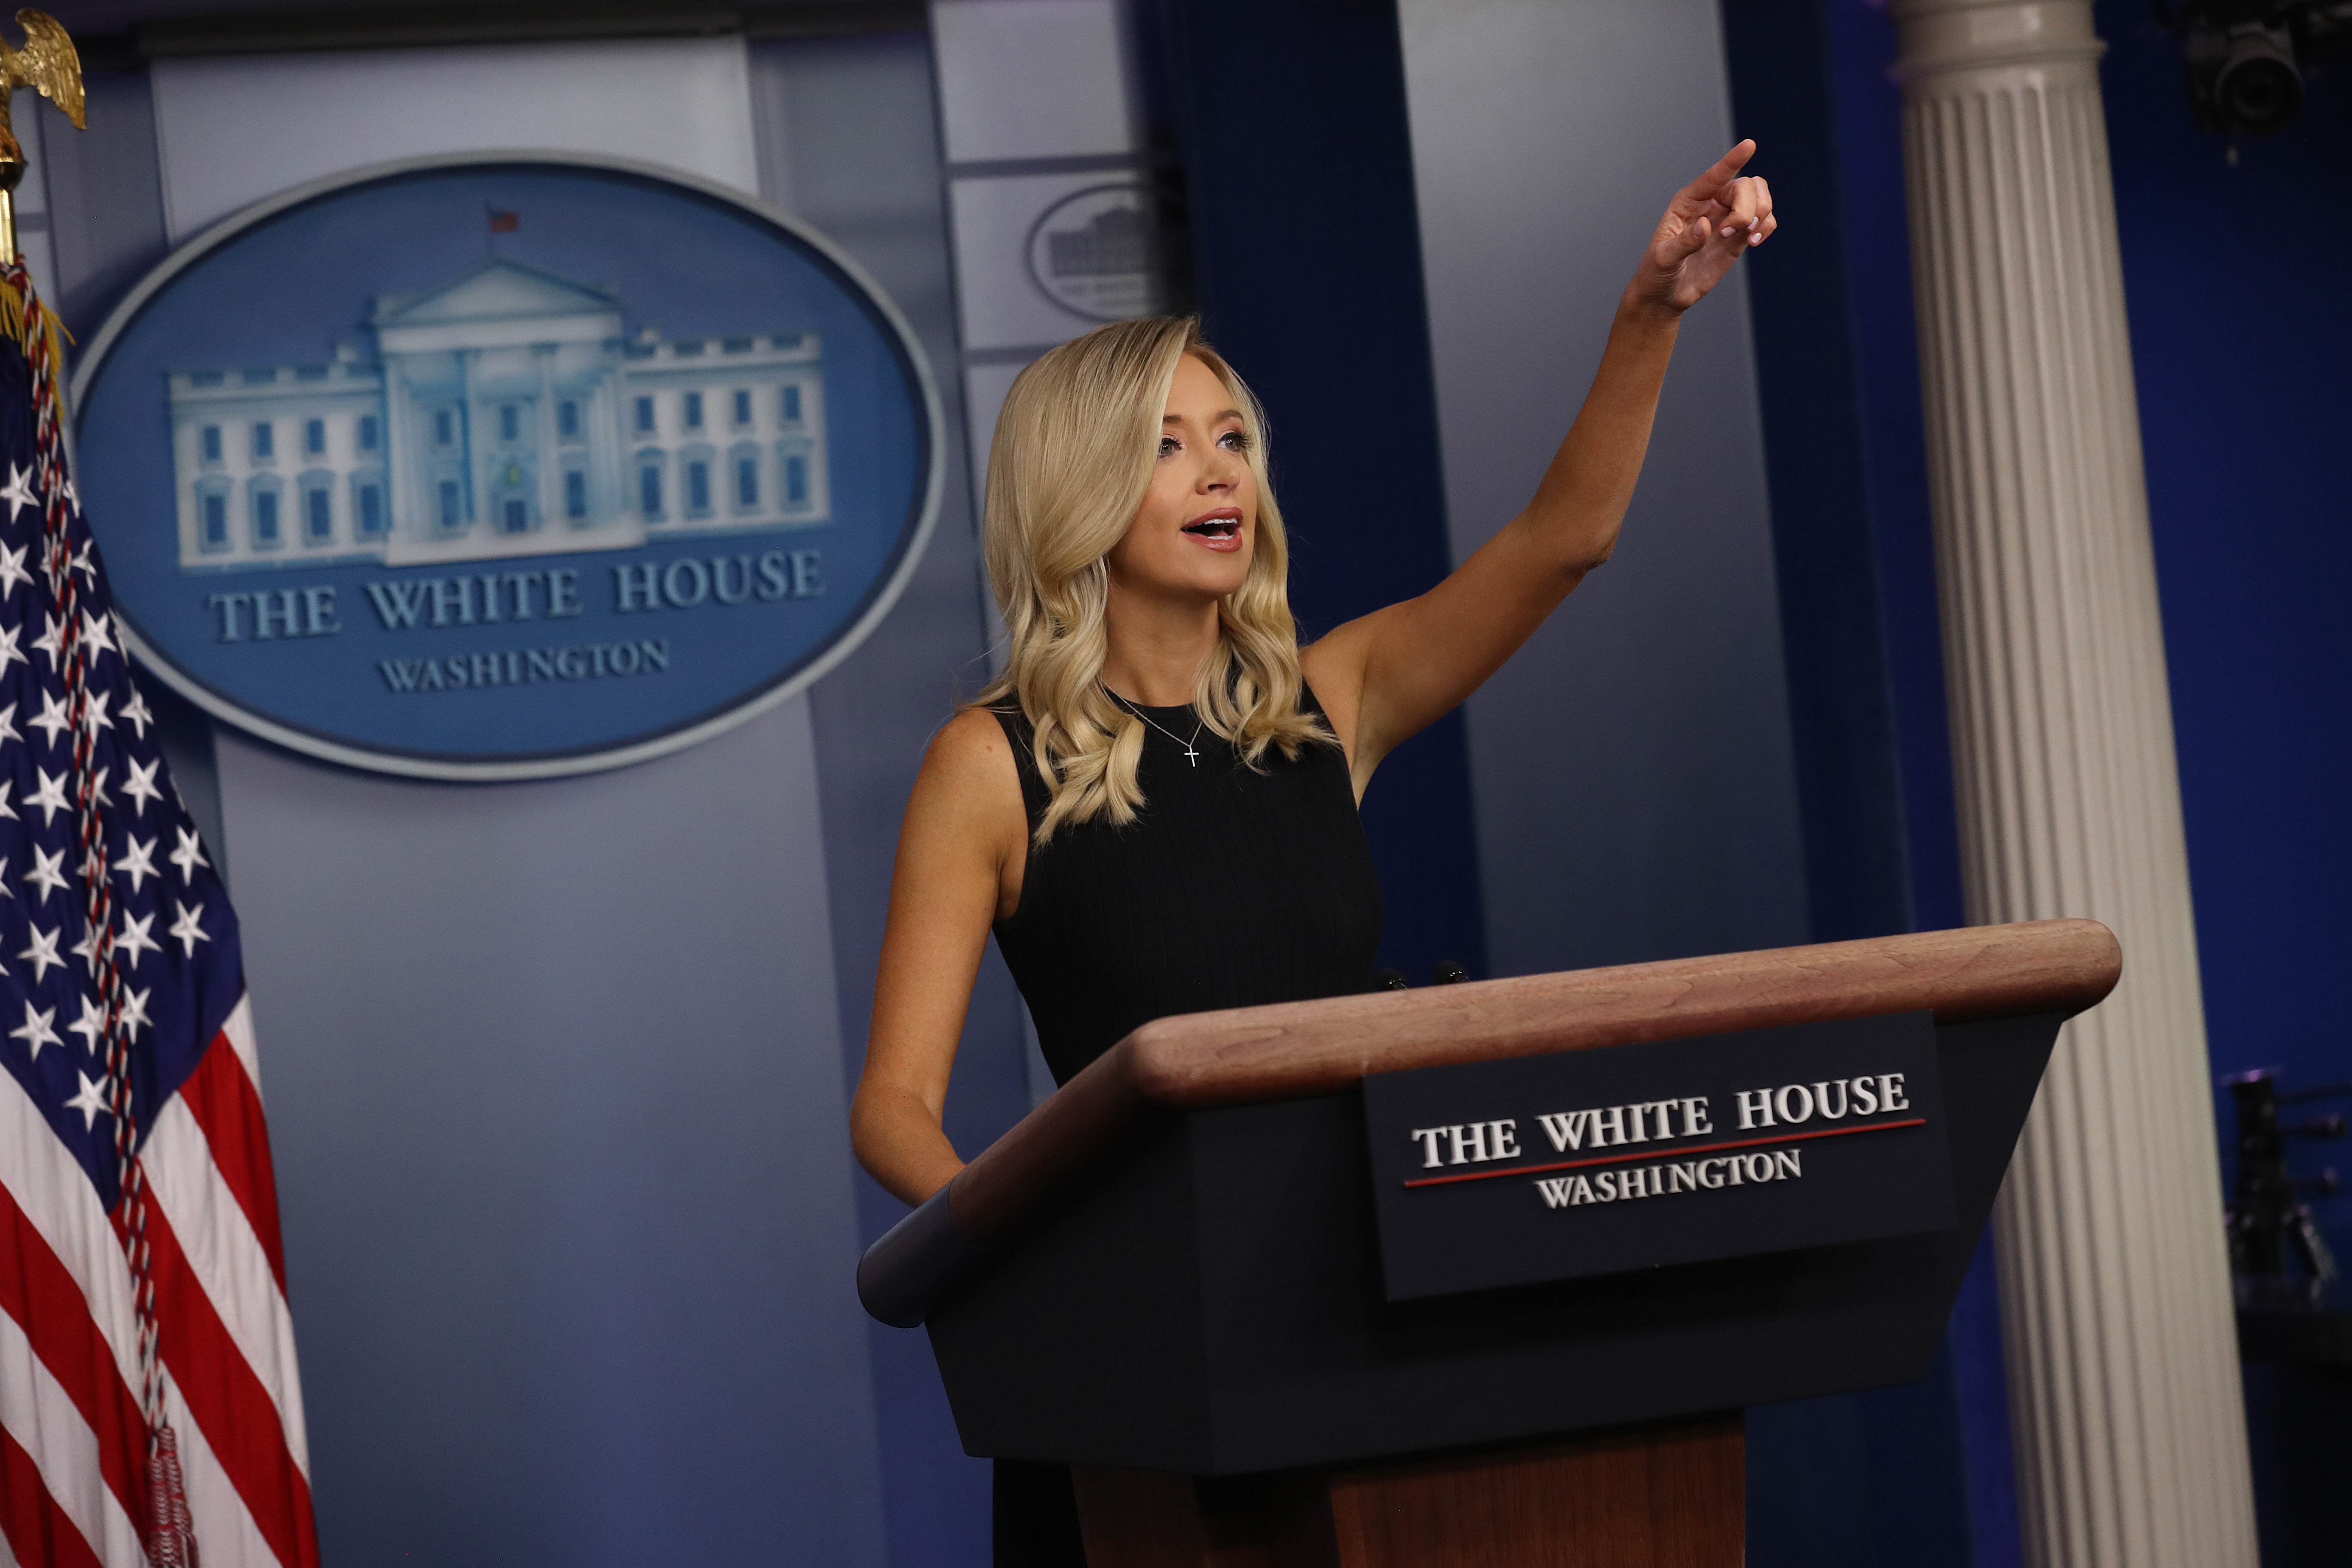 WASHINGTON, DC - JULY 21: White House Press Secretary Kayleigh McEnany speaks during a briefing in the Brady Press Briefing Room at the White House July 21, 2020 in Washington, DC. McEnany took questions from reporters on several topics including President Trump's response to the coronavirus pandemic. (Photo by Chip Somodevilla/Getty Images)